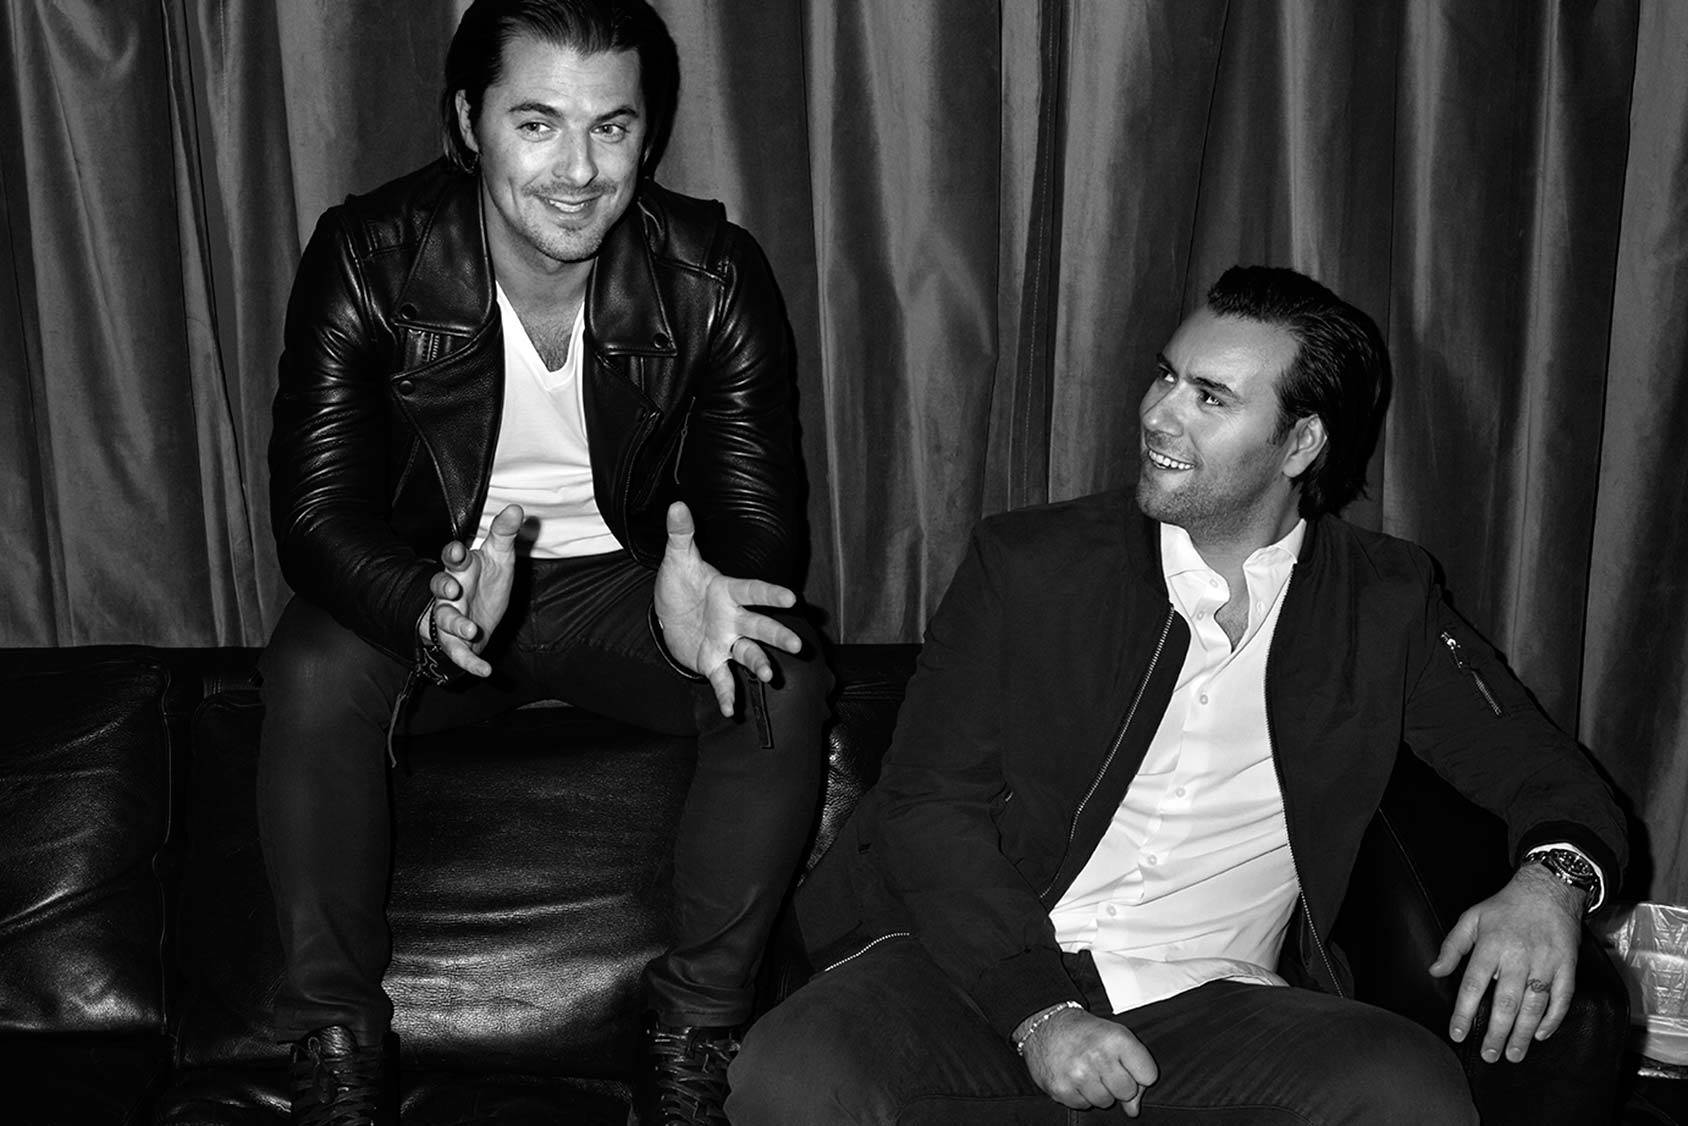 Swedish super duo Axwell and Ingrosso.